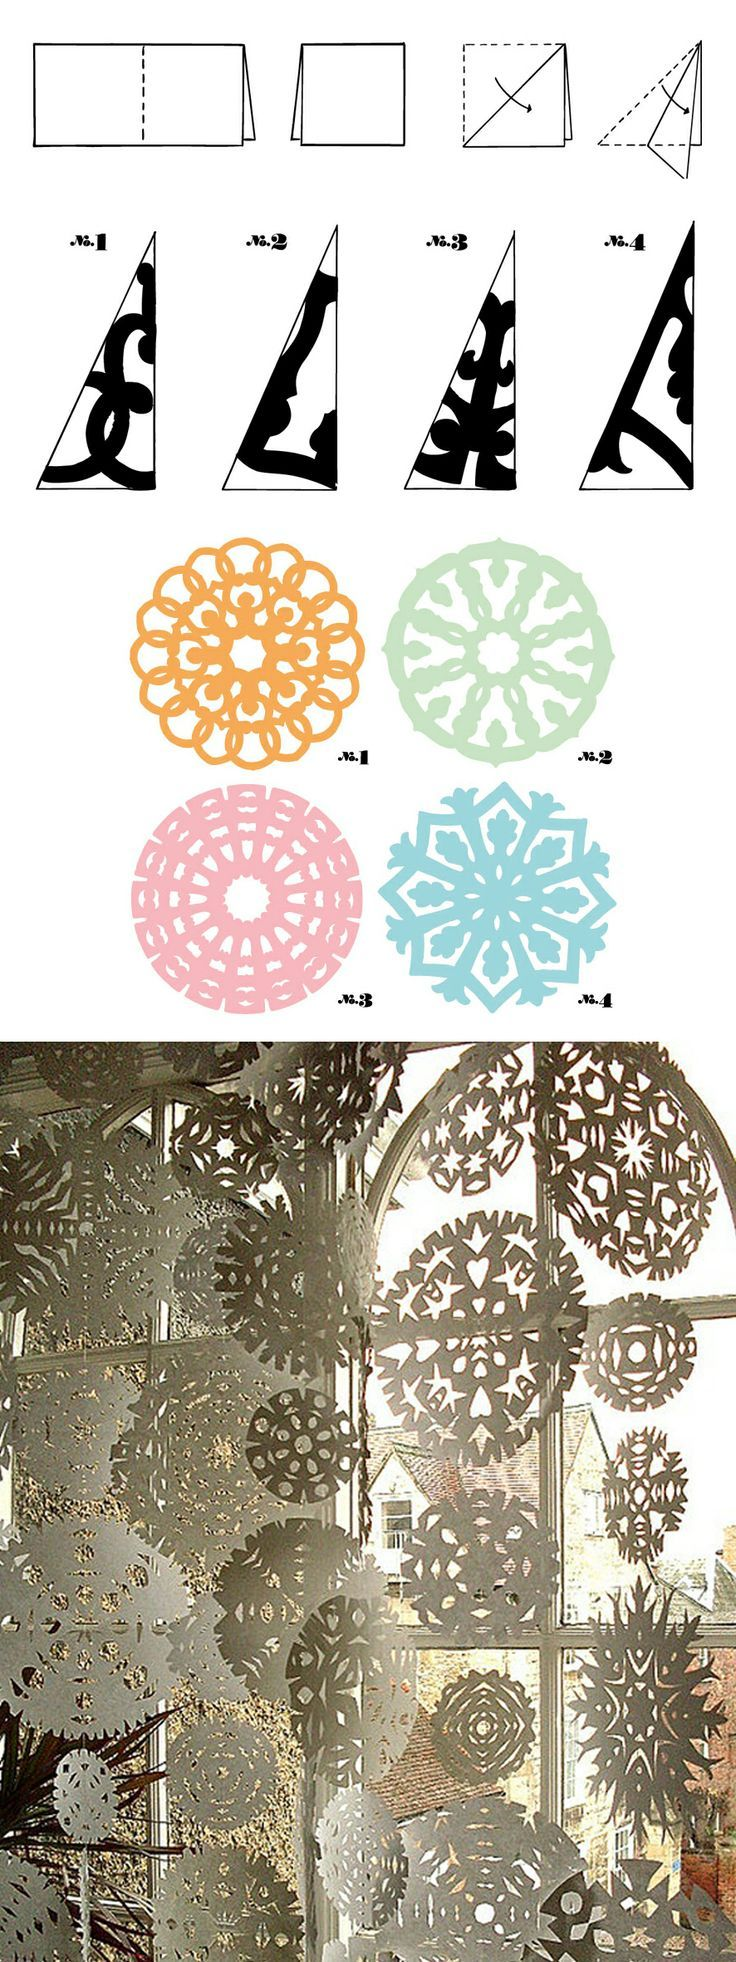 As making paper snowflakes #recycle design: | Manualidades ...